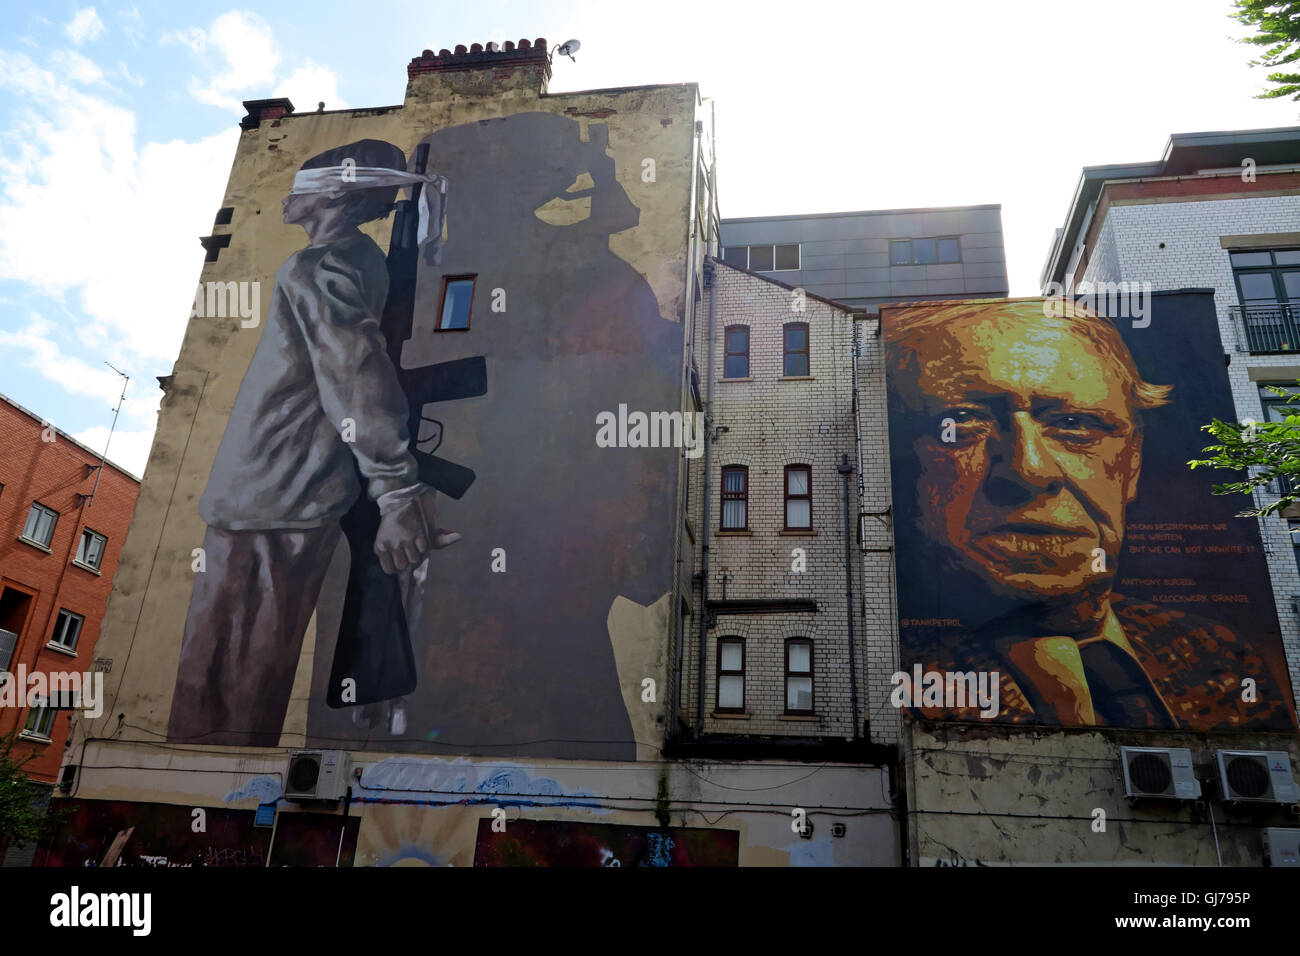 Author Anthony Burgess mural art work, with blindfolded child holding gun, Northern Quarter, Brightwell walk, Manchester - Stock Image